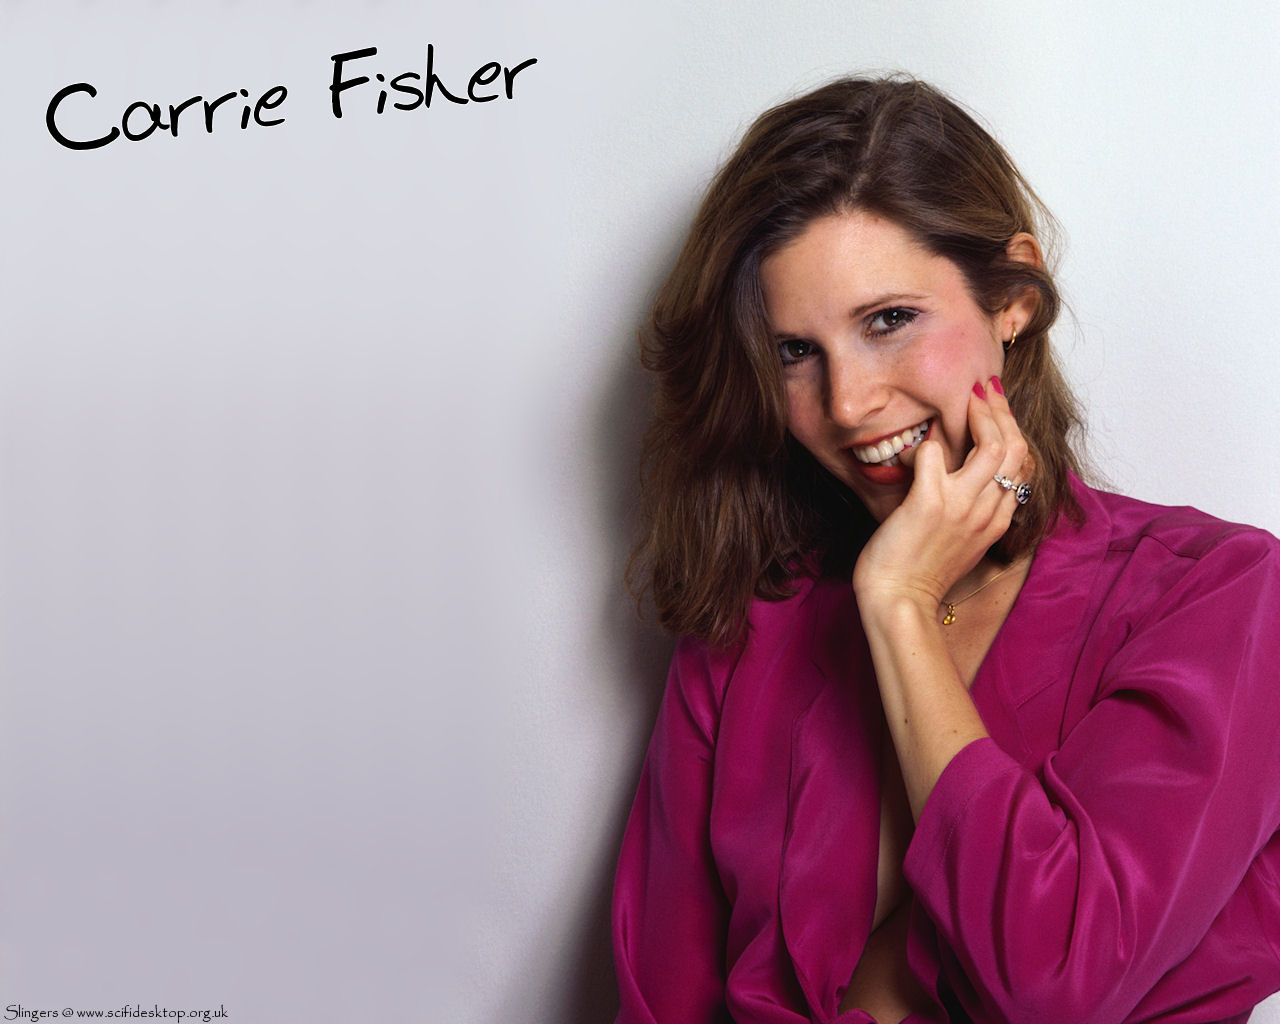 1280x1024 - Carrie Fisher Wallpapers 1